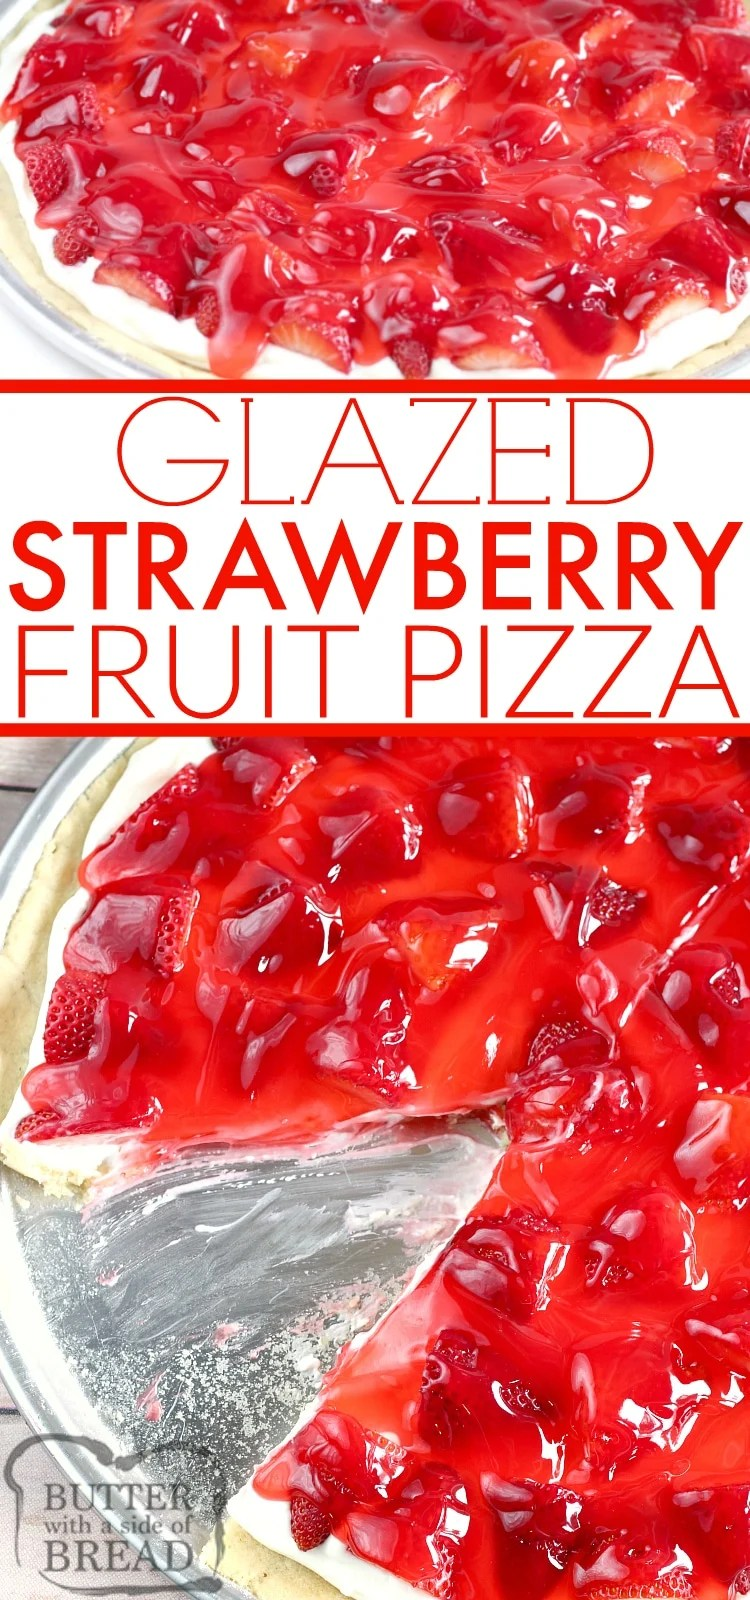 Glazed Strawberry Fruit Pizza is made with a sugar cookie crust that is topped with a cream cheese layer, fresh strawberries and a delicious strawberry glaze!